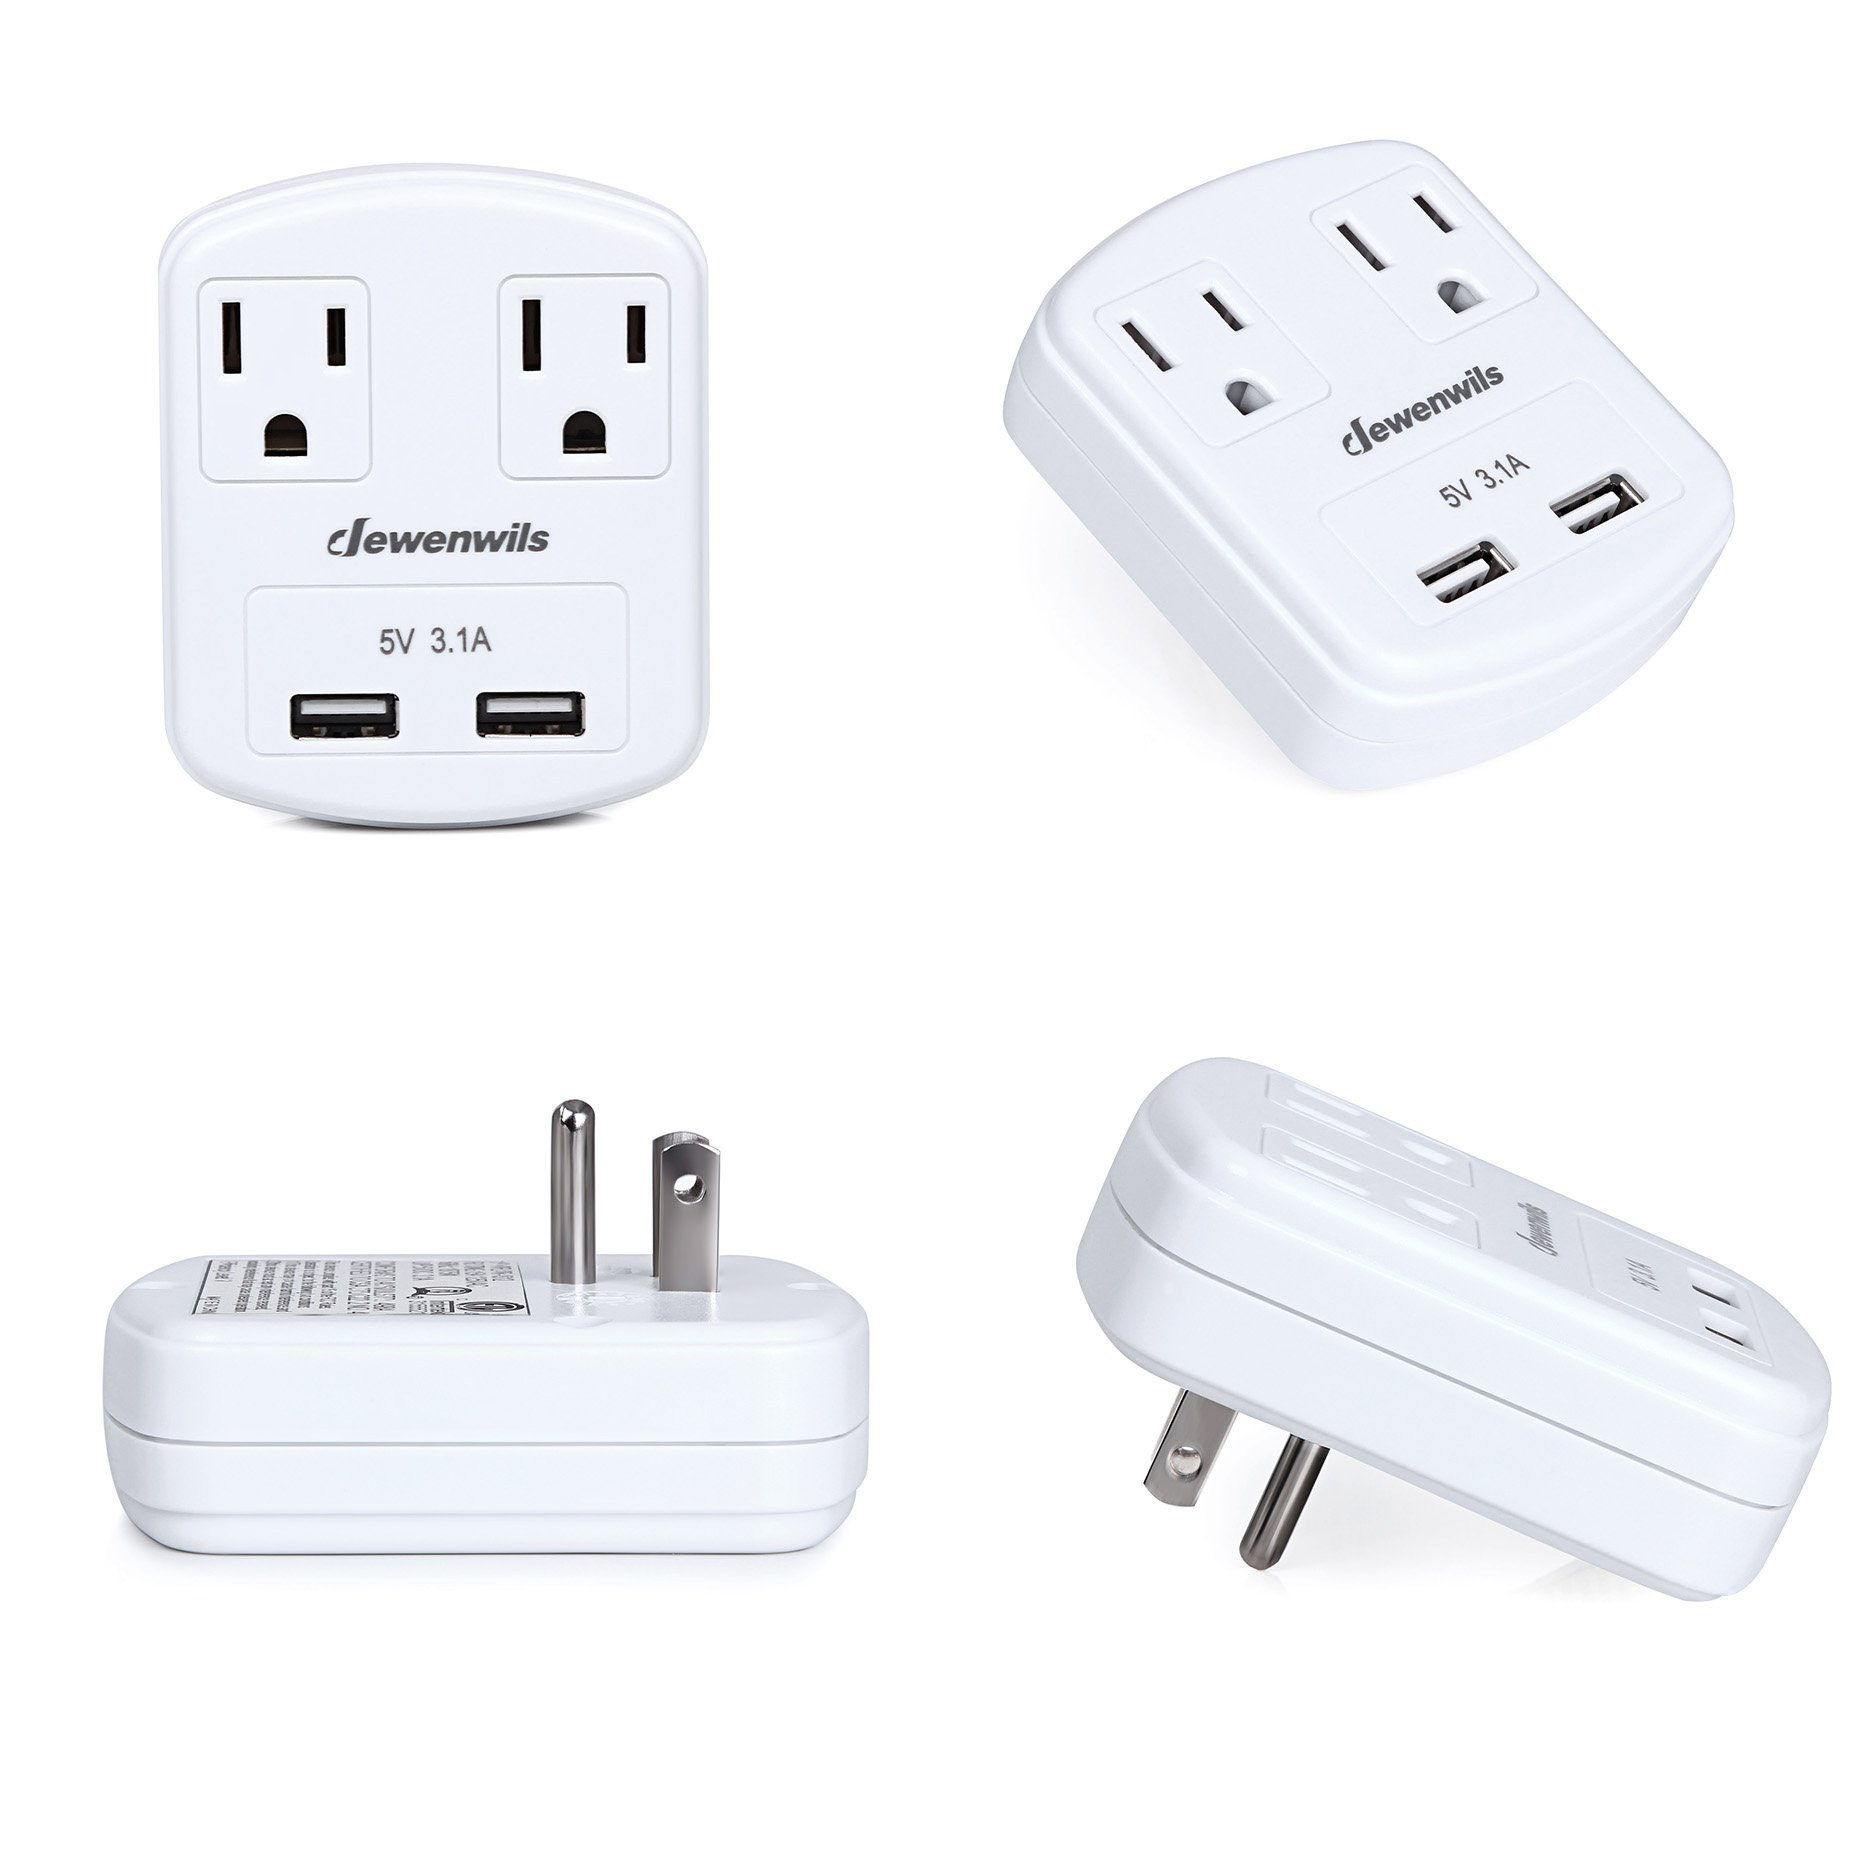 Dewenwils Multi Outlet Plug with 2 USB Ports (3.1A Total), Small Power Strip USB Charger for Cruise Ship/Hotel / Dormitory, Compatible with GFCI, ETL Listed, White by DEWENWILS (Image #8)